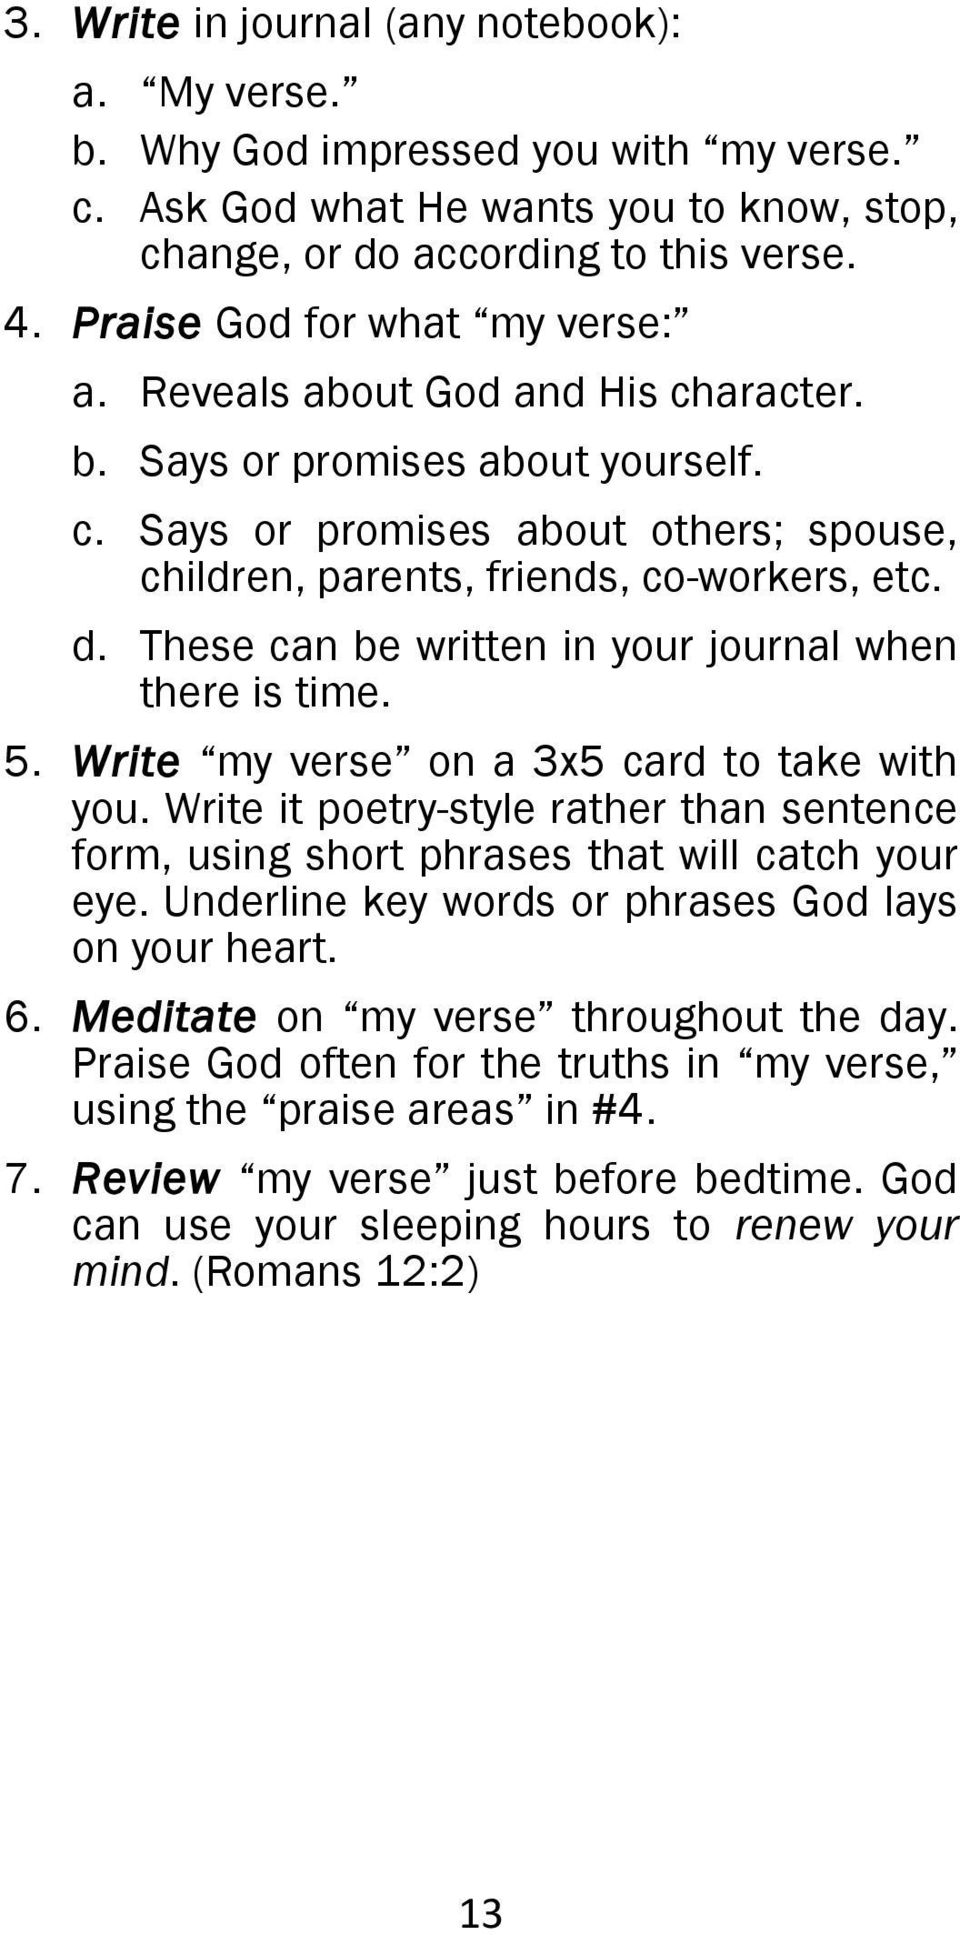 These can be written in your journal when there is time. 5. Write my verse on a 3x5 card to take with you.